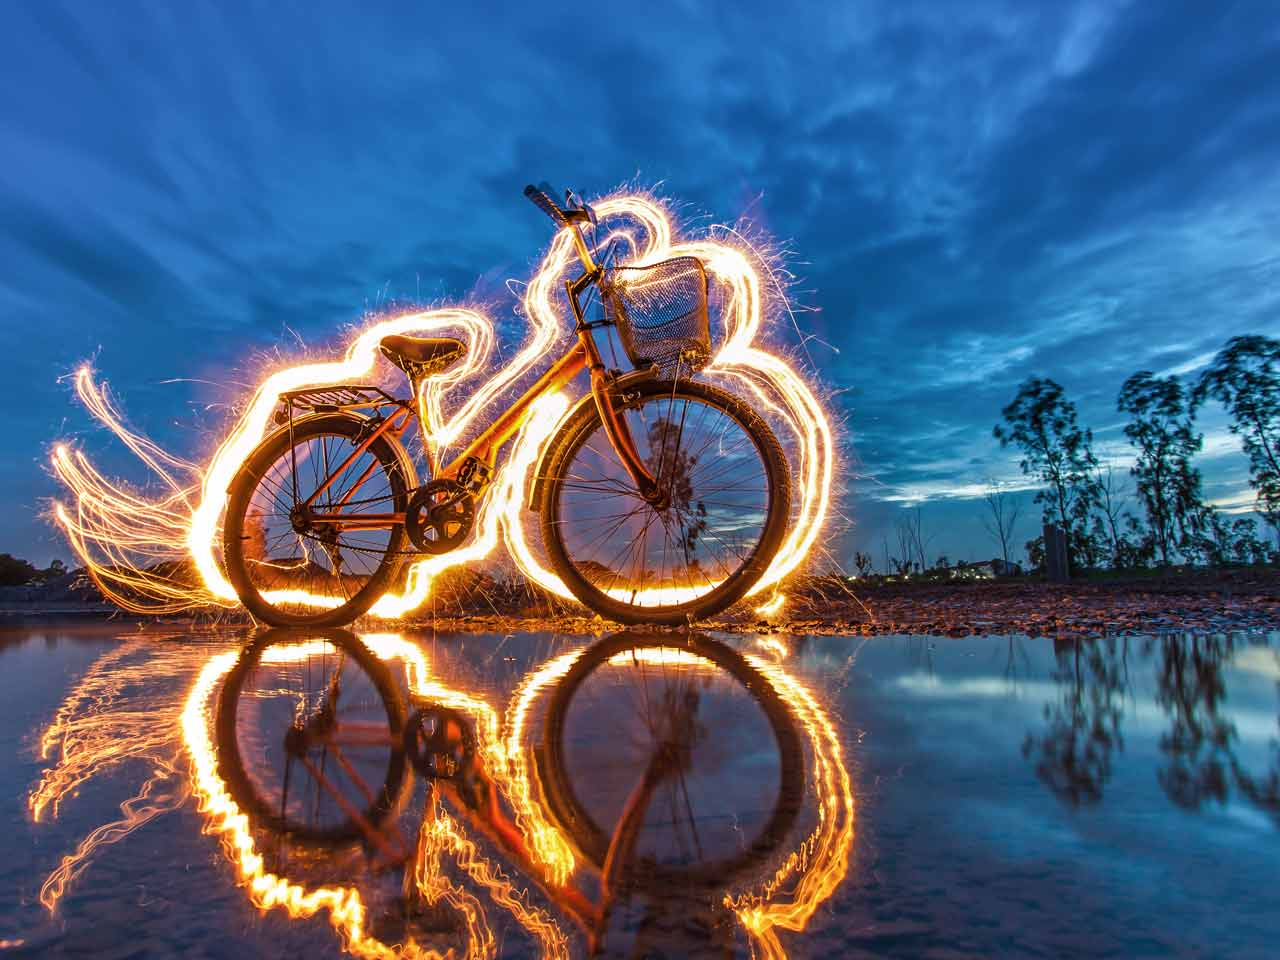 night photography tips